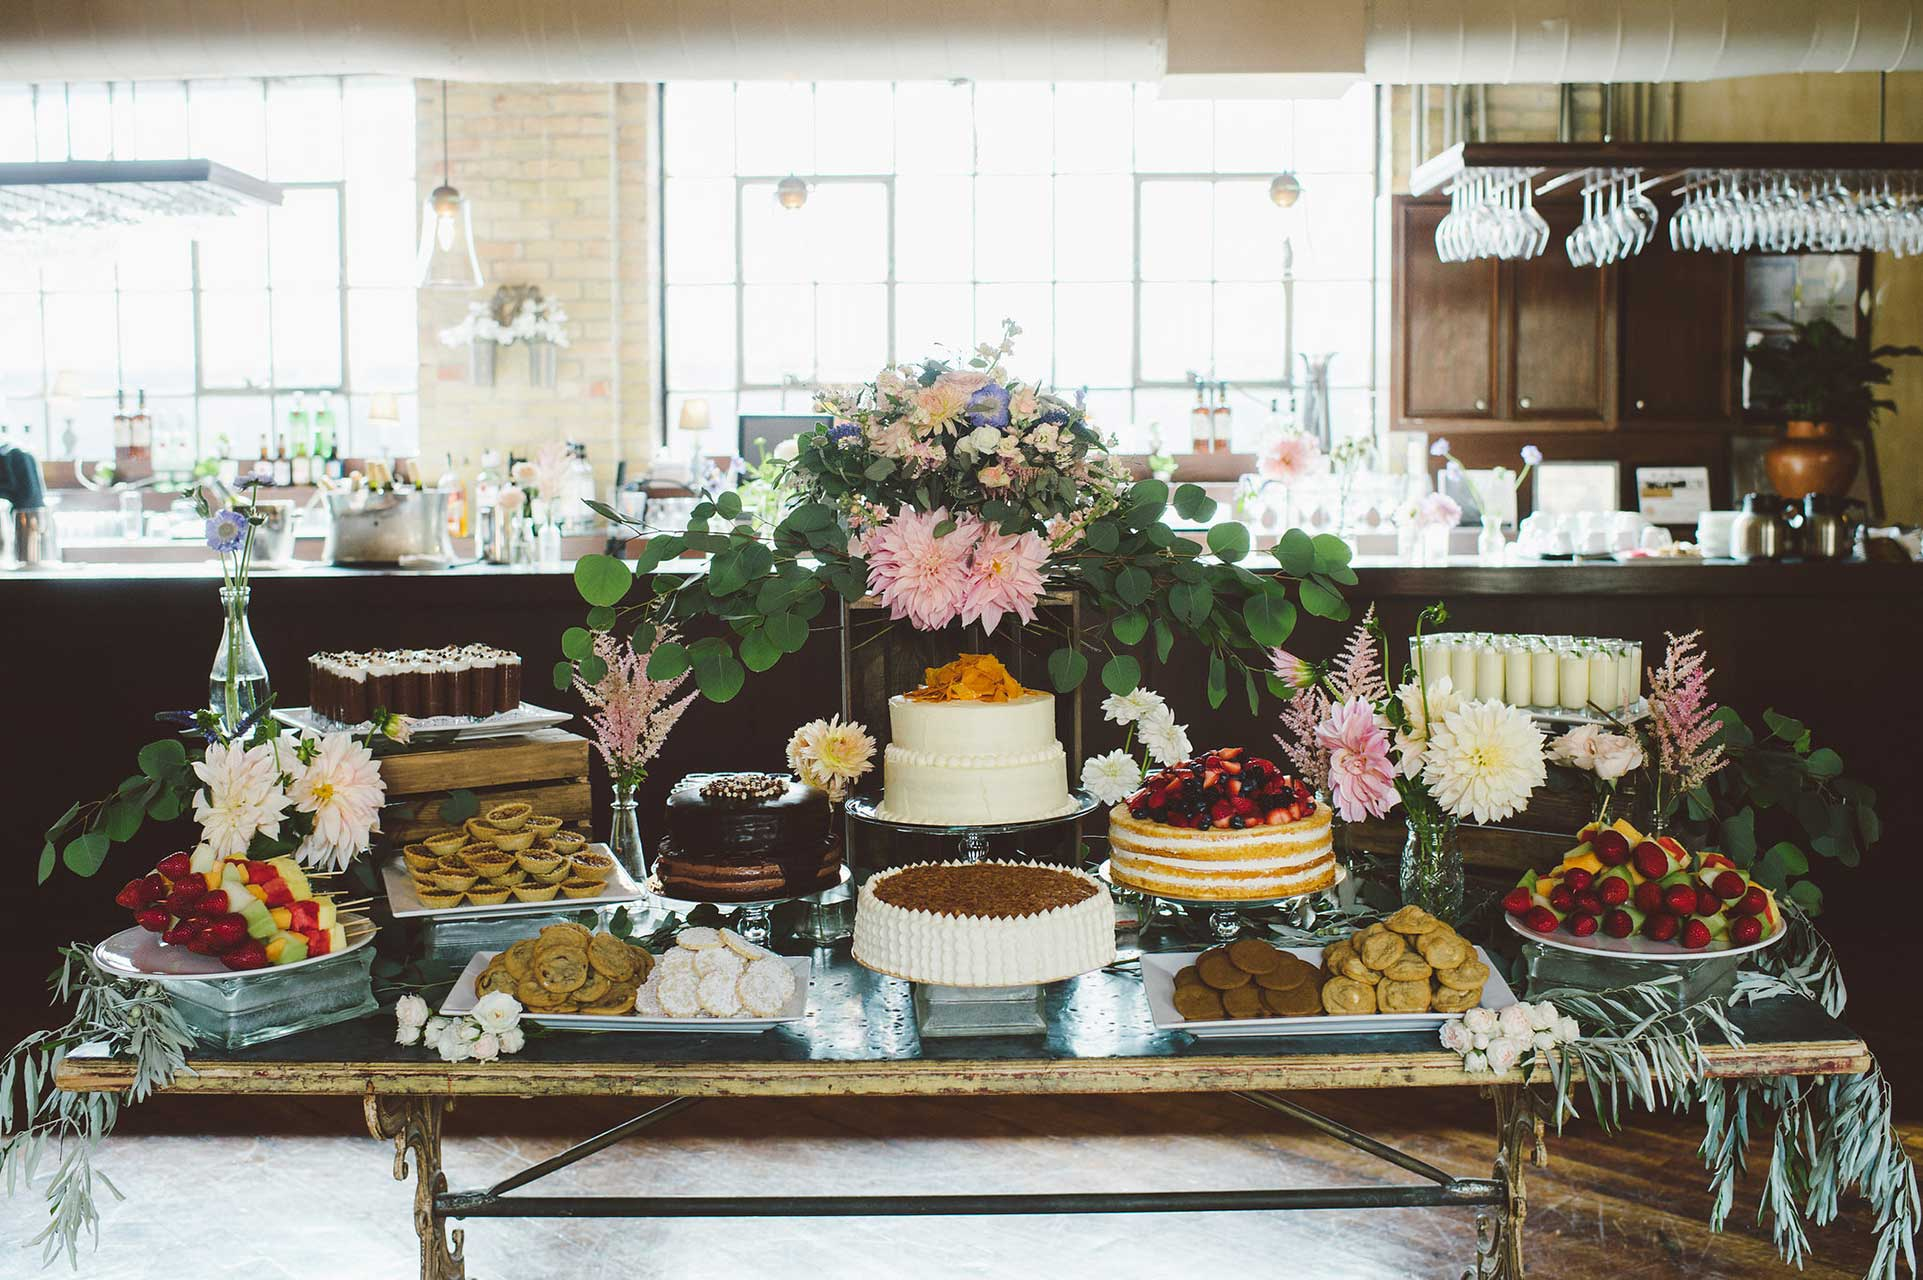 Wedding Venues Toronto - Dessert Reception - Sweet Table - Wedding Cakes